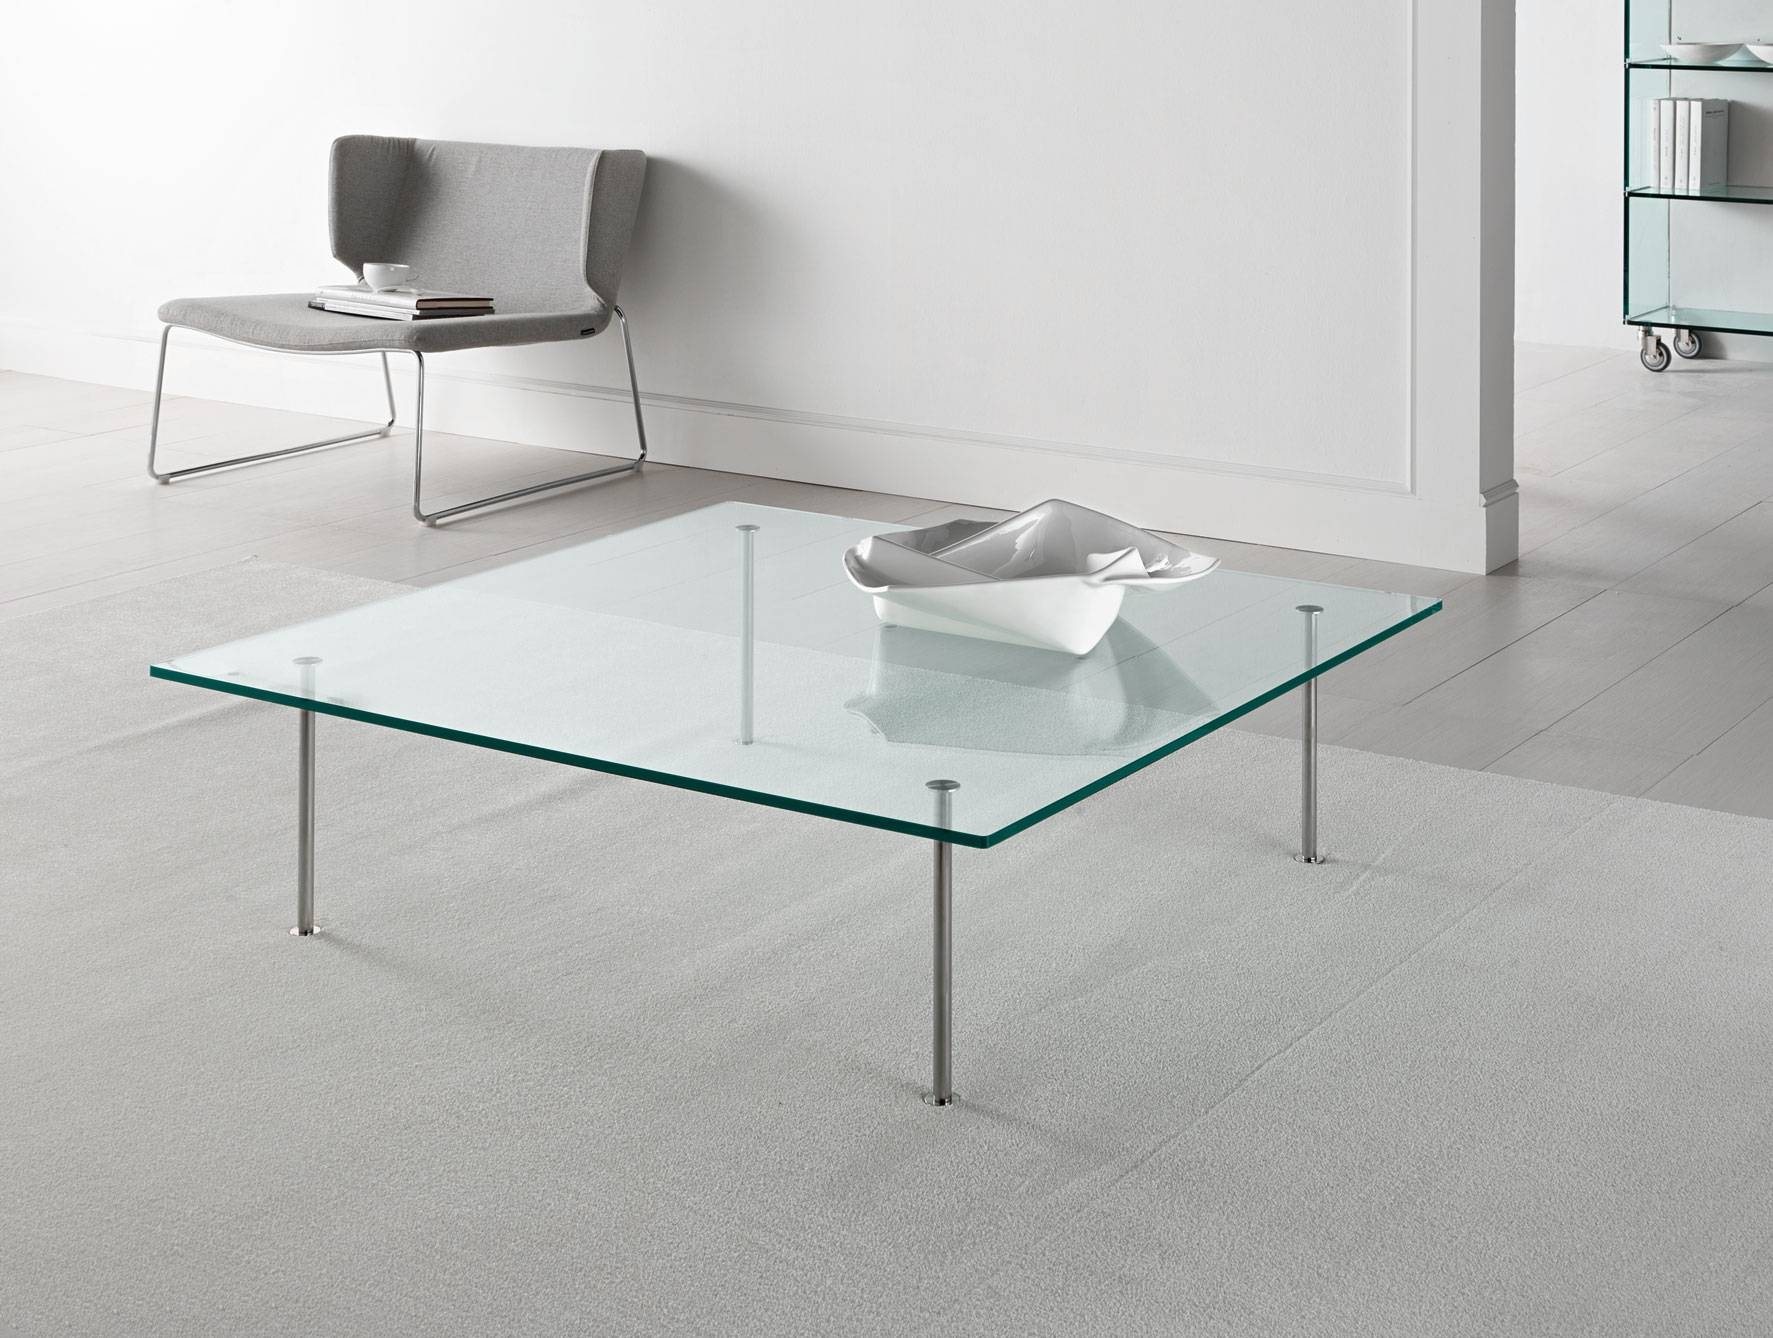 Small Glass Cocktail Tables | Decorative Table Decoration inside Simple Glass Coffee Tables (Image 27 of 30)